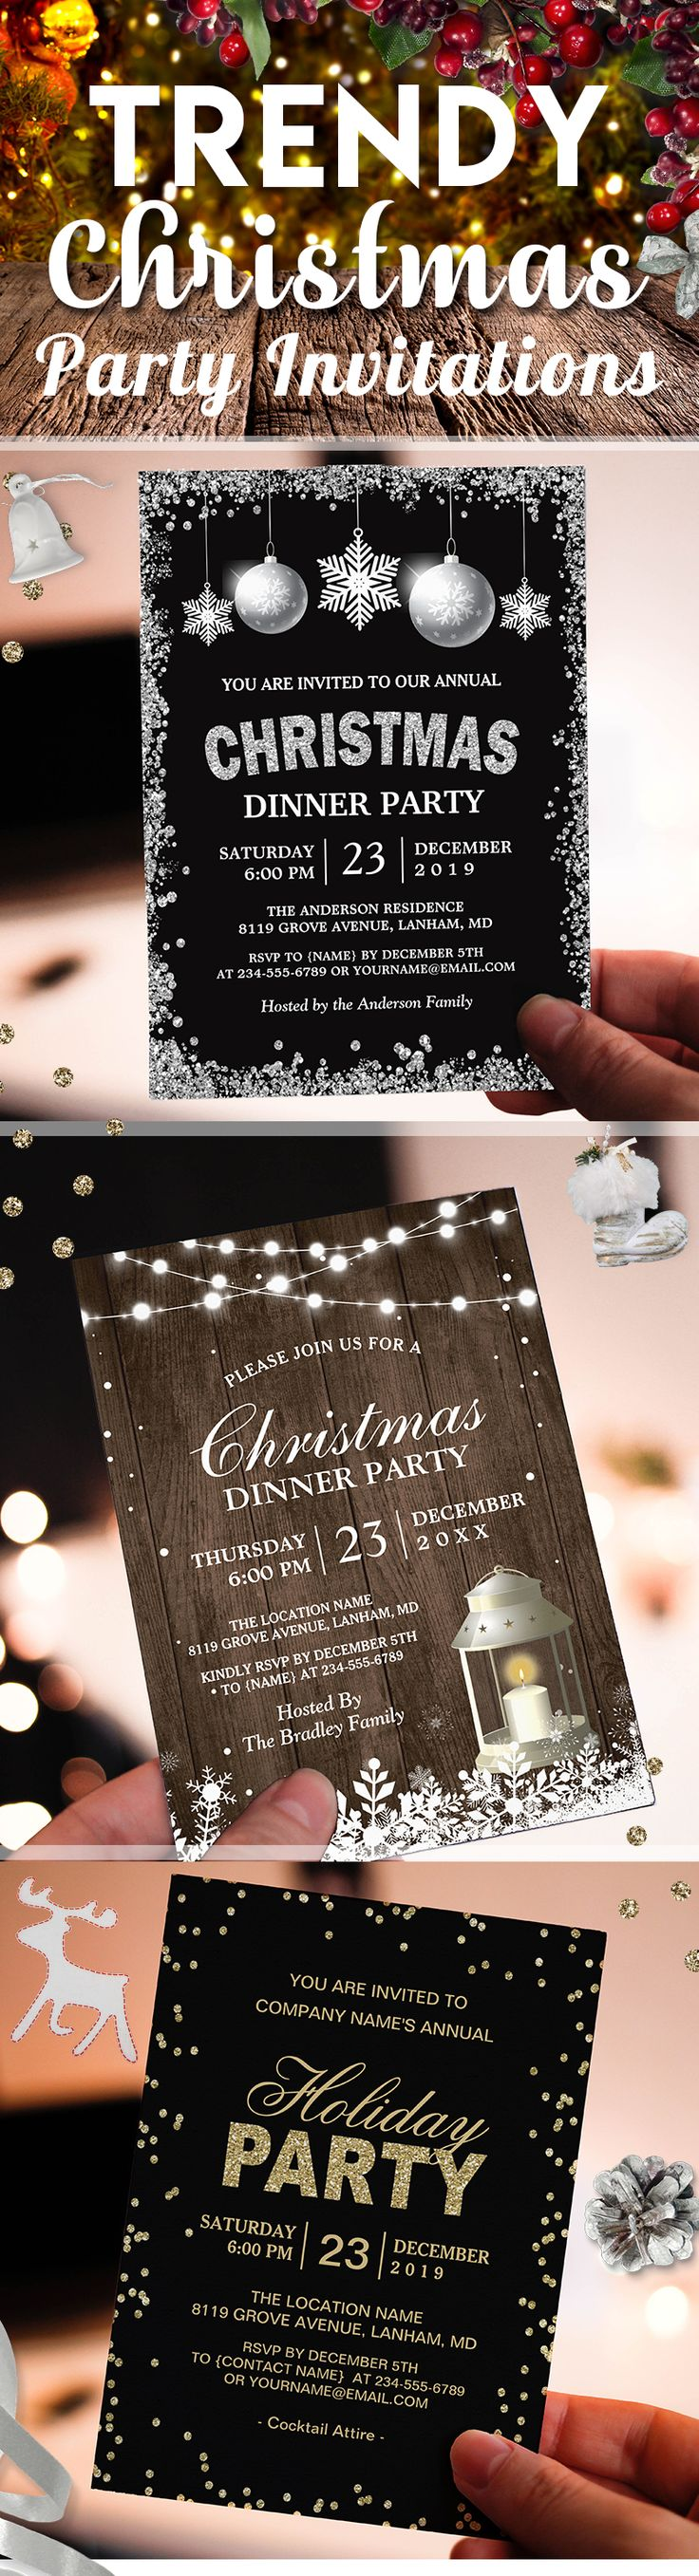 invitation wedding wording gifts%0A     Stunning Holiday And Christmas Party Invitations